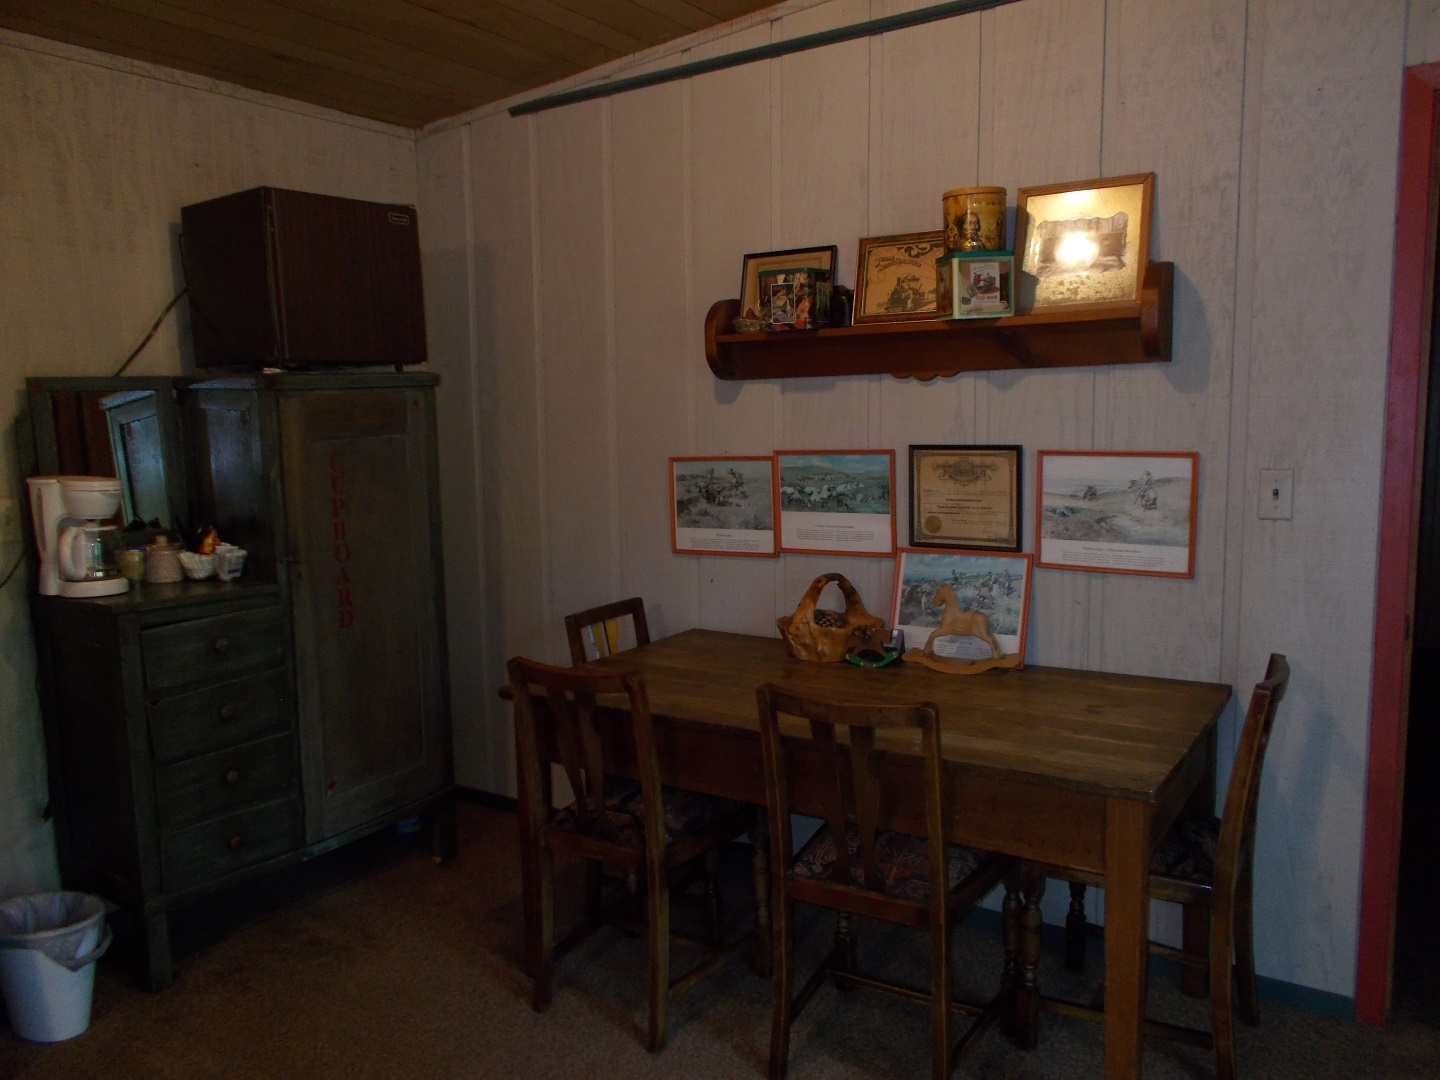 A kitchen with a table in a room at Beans Creek Ranch Cabin.